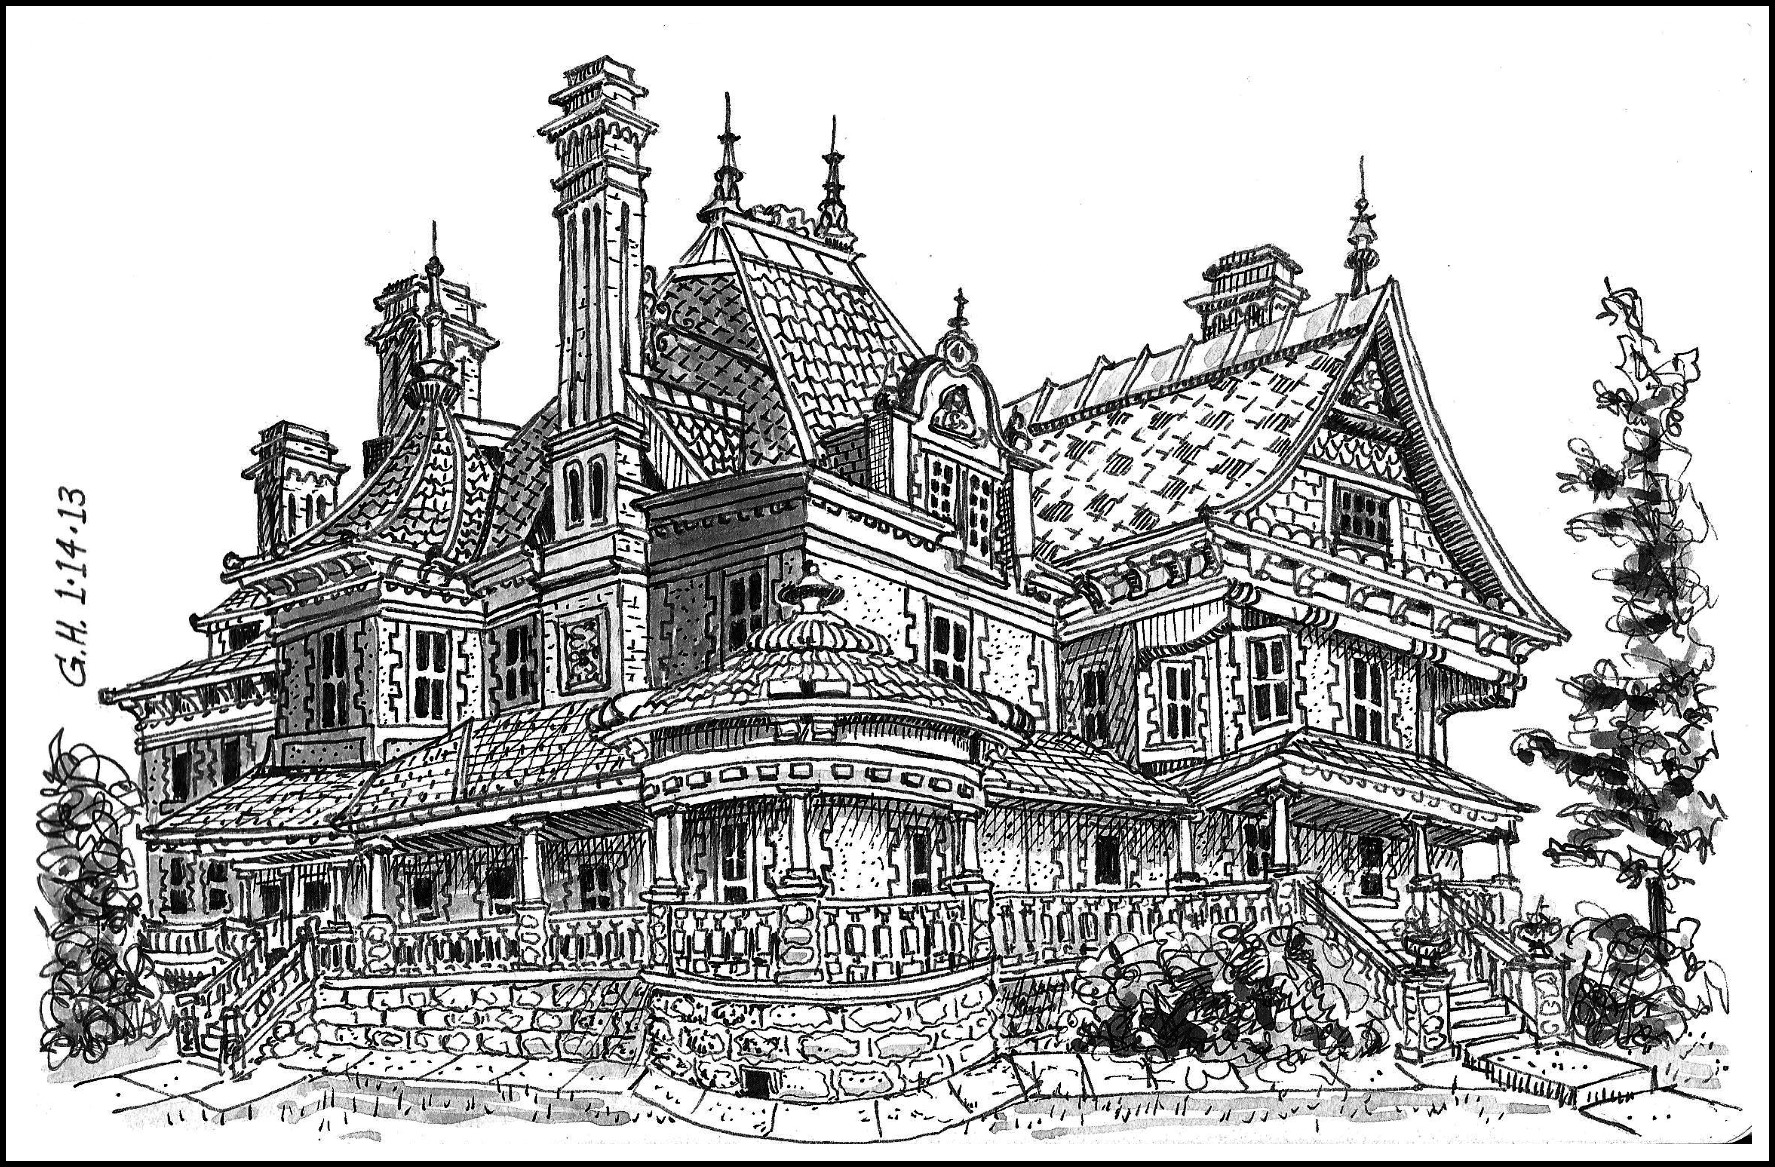 Drawn building old victorian house Drawings Victorian Displaying Houses